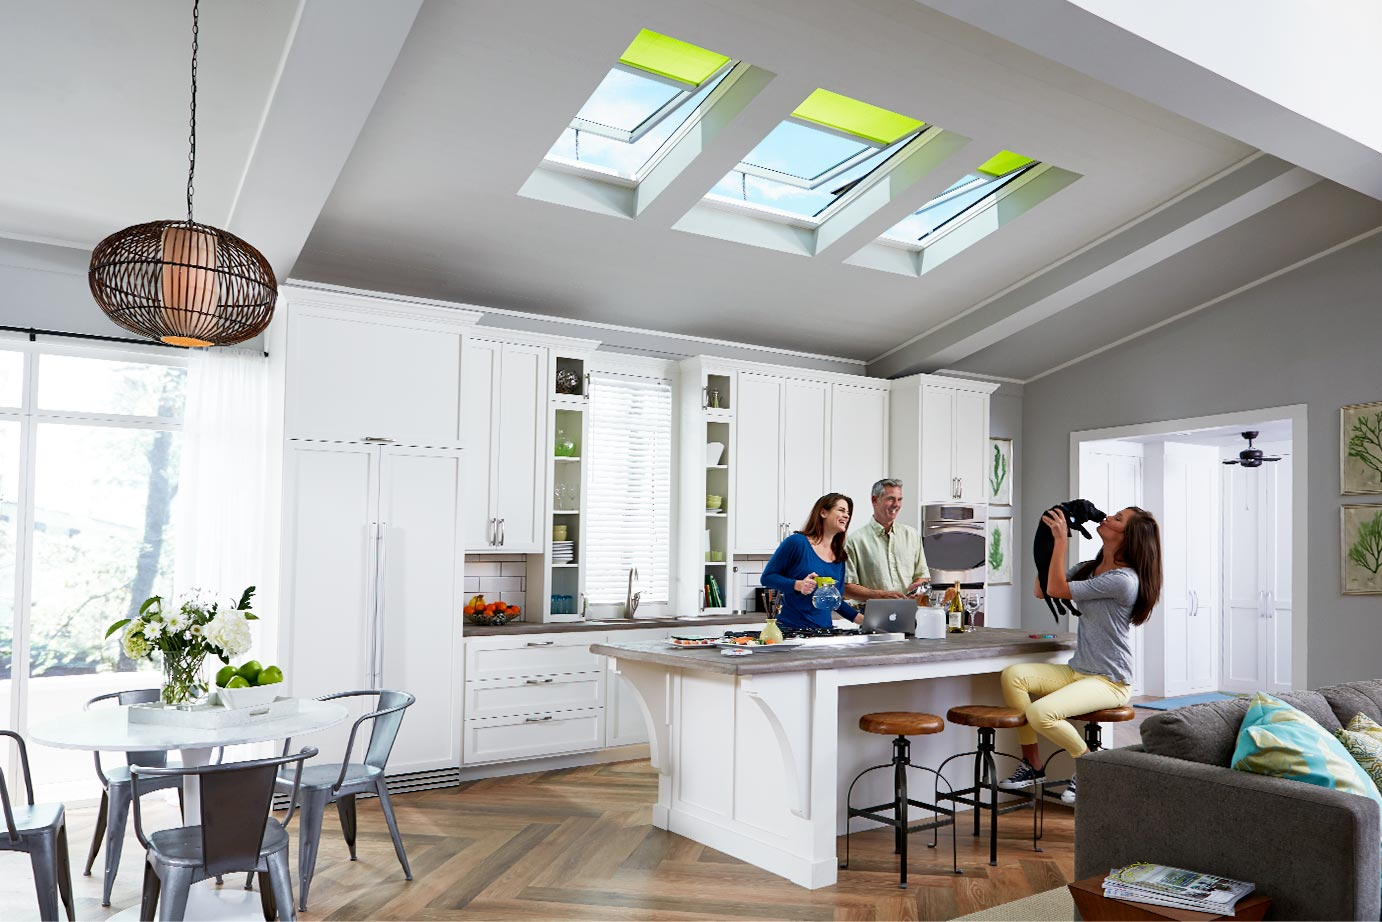 kitchen green blinds?h=922&la=en&w=1382&cc=grid_12&key=145917965341898&sw=960 velux frequently asked questions velux klf 100 wiring diagram at crackthecode.co